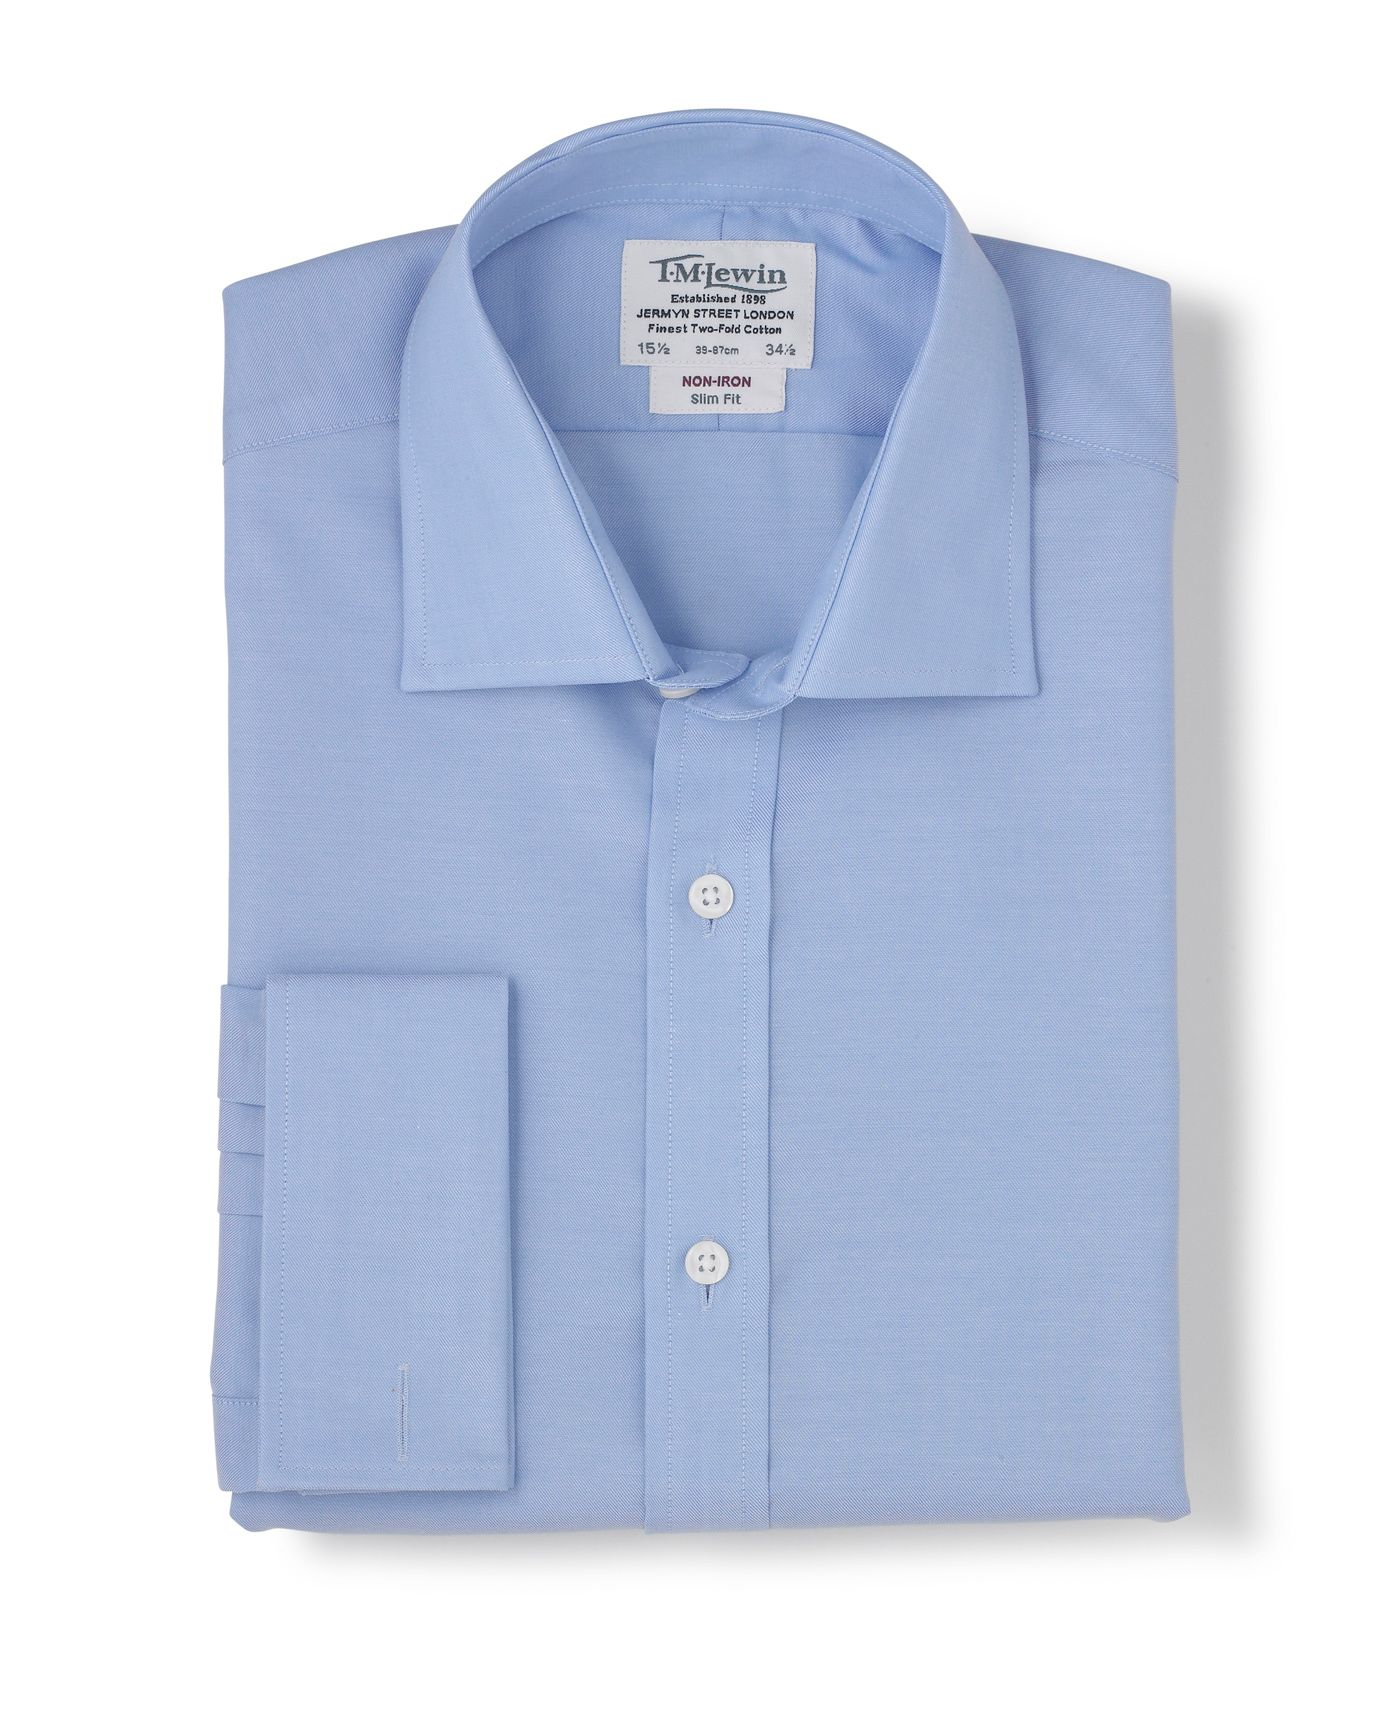 Tm Lewin Non Iron Slim Fit Shirt In Blue For Men Lyst